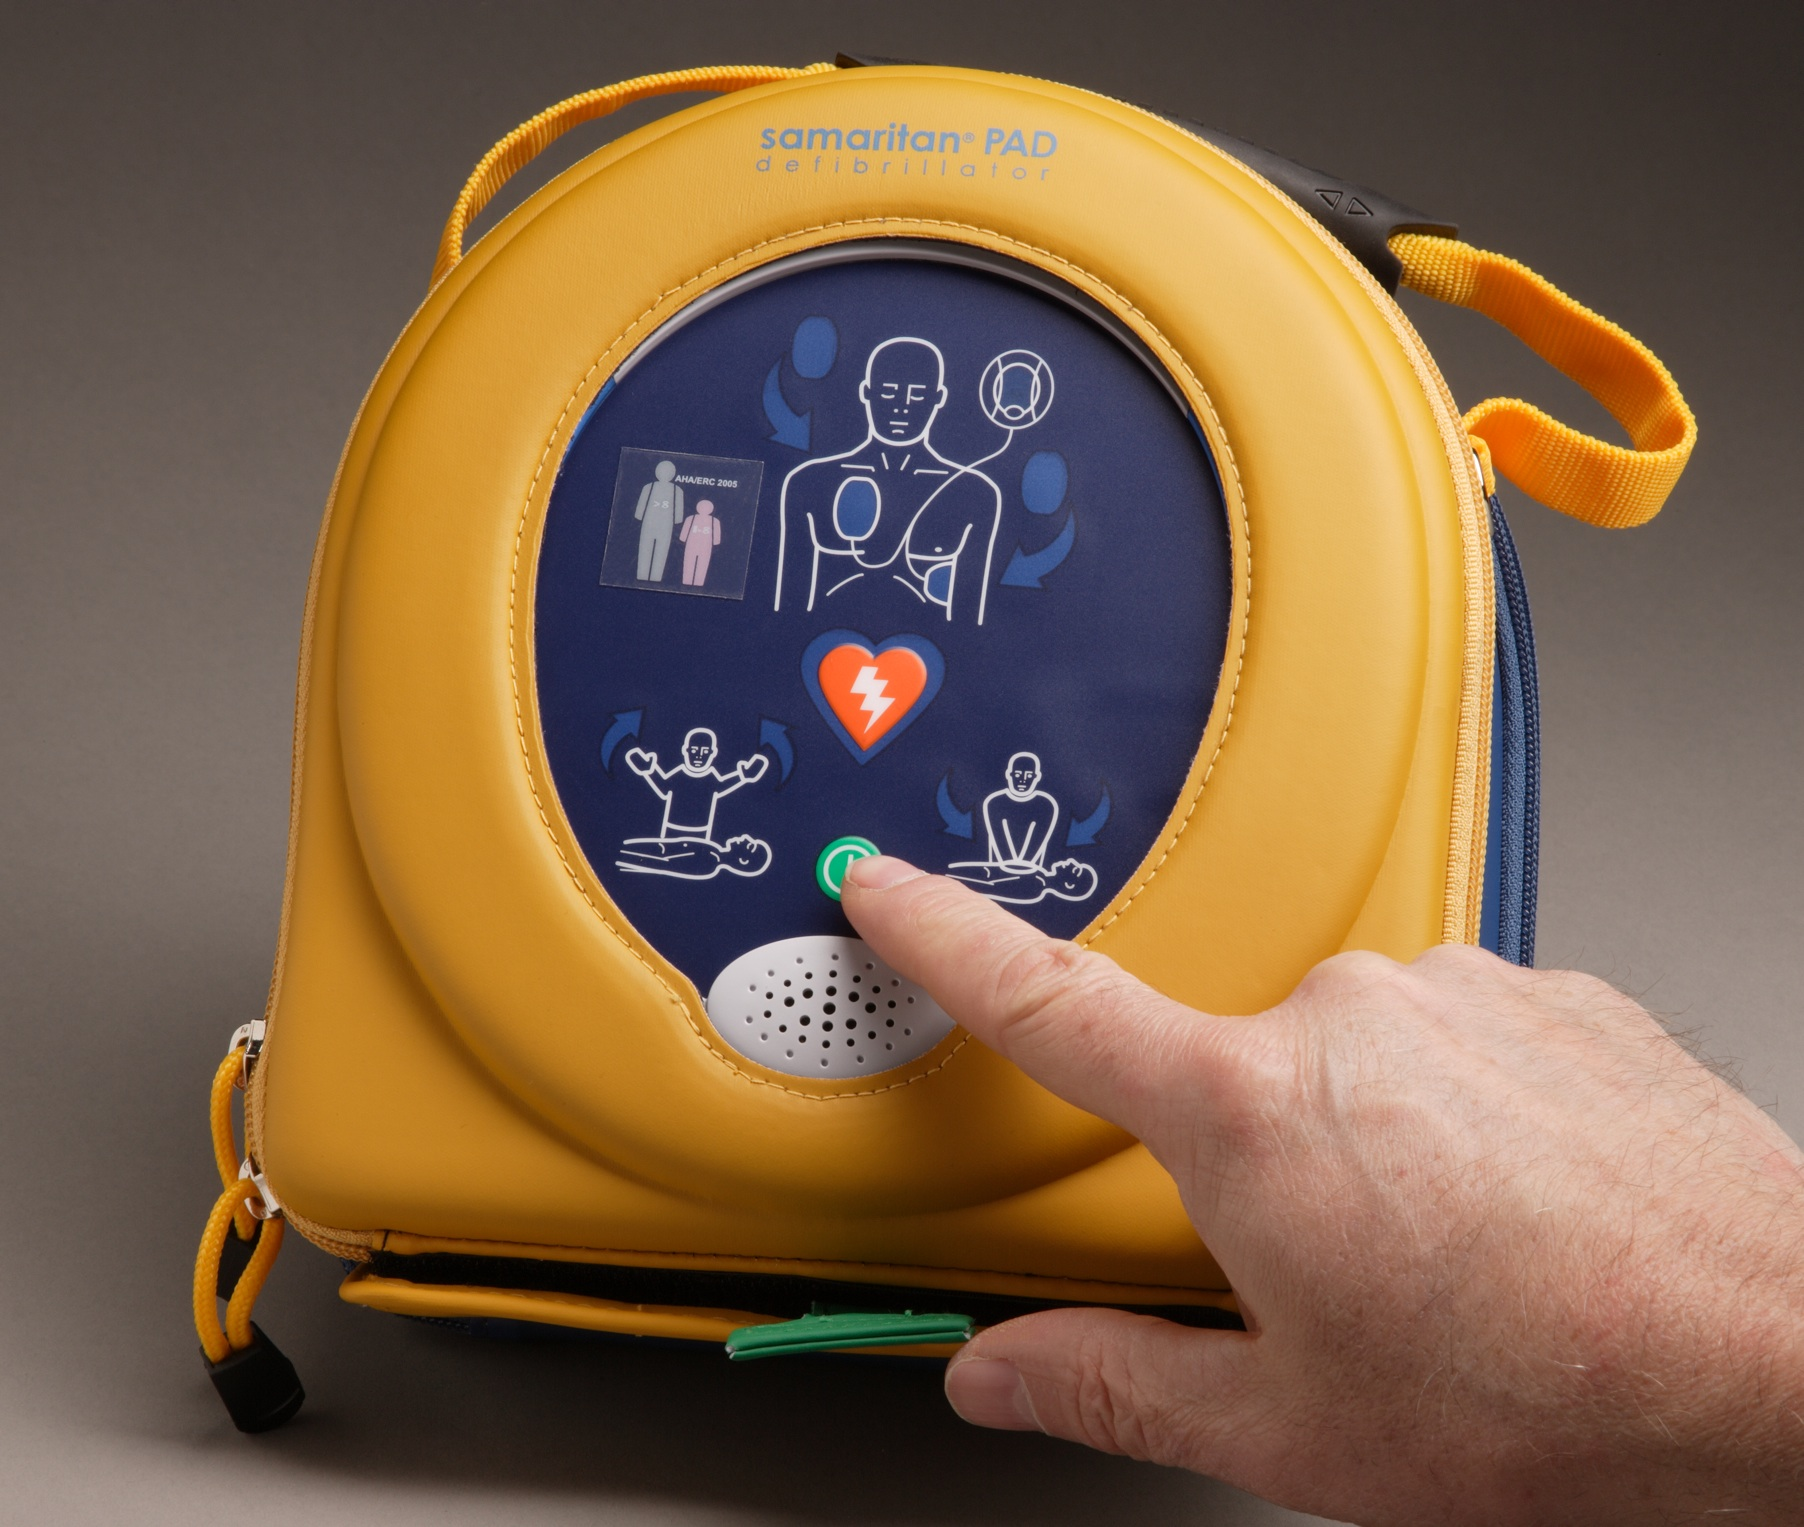 An AED (Automated External Defibrillator) is a Medical Device That ...